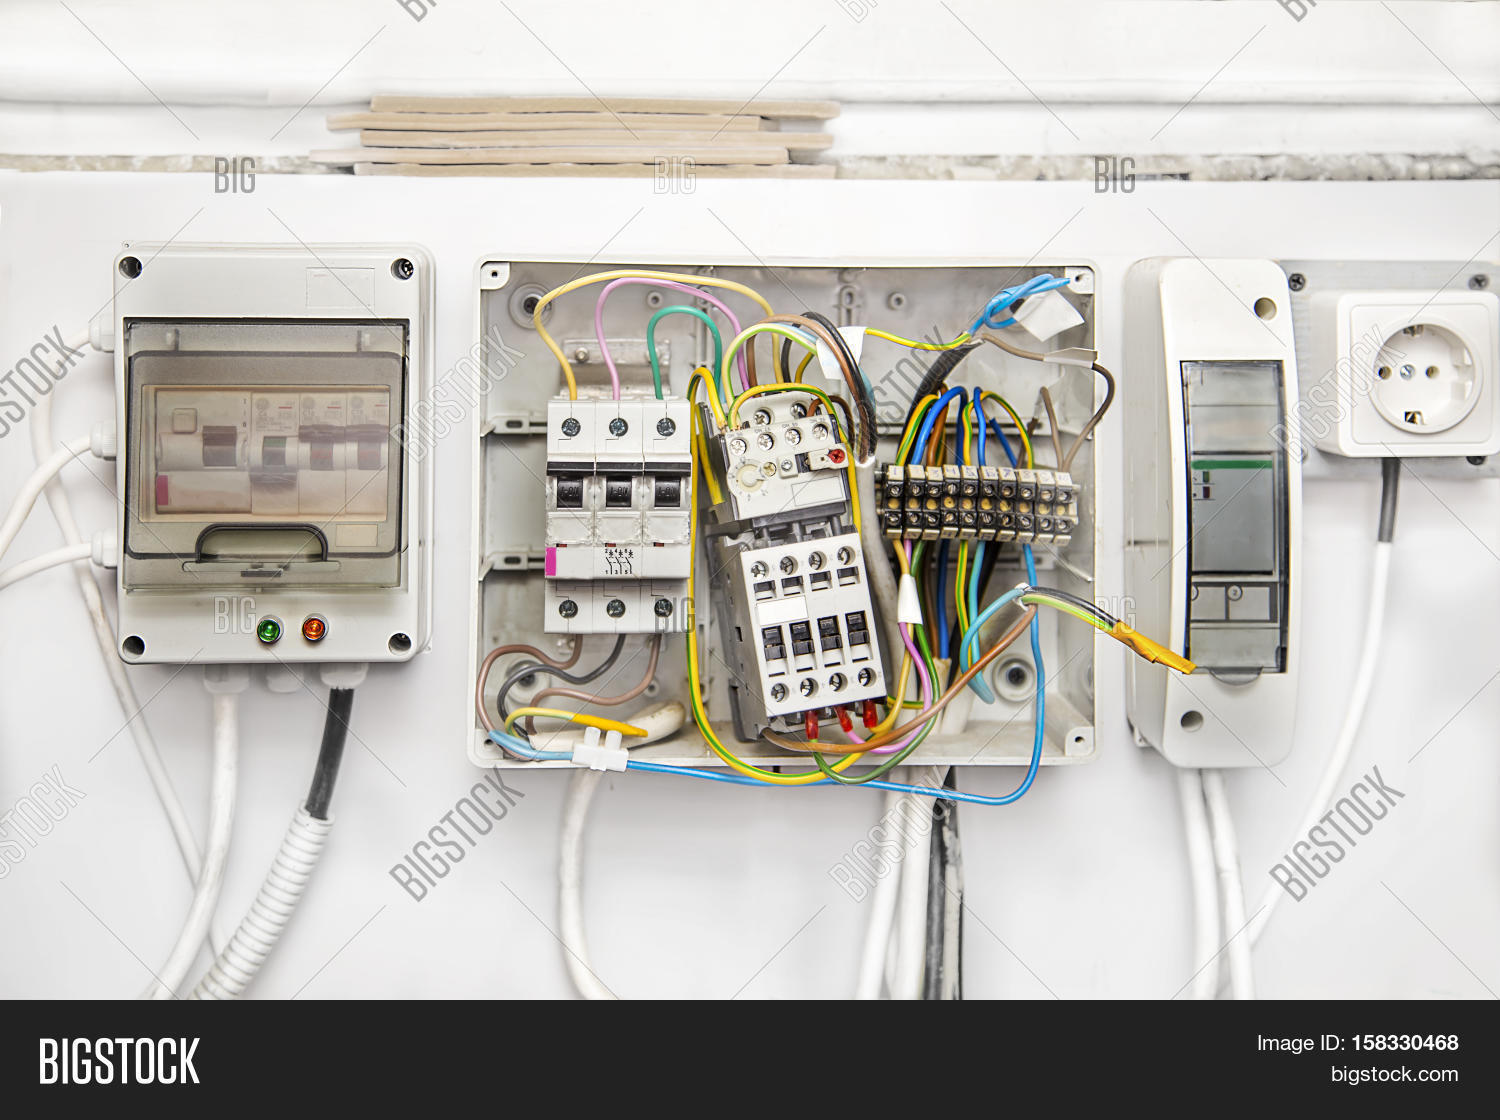 Breakers Switch Flat Image & Photo (Free Trial) | Bigstock